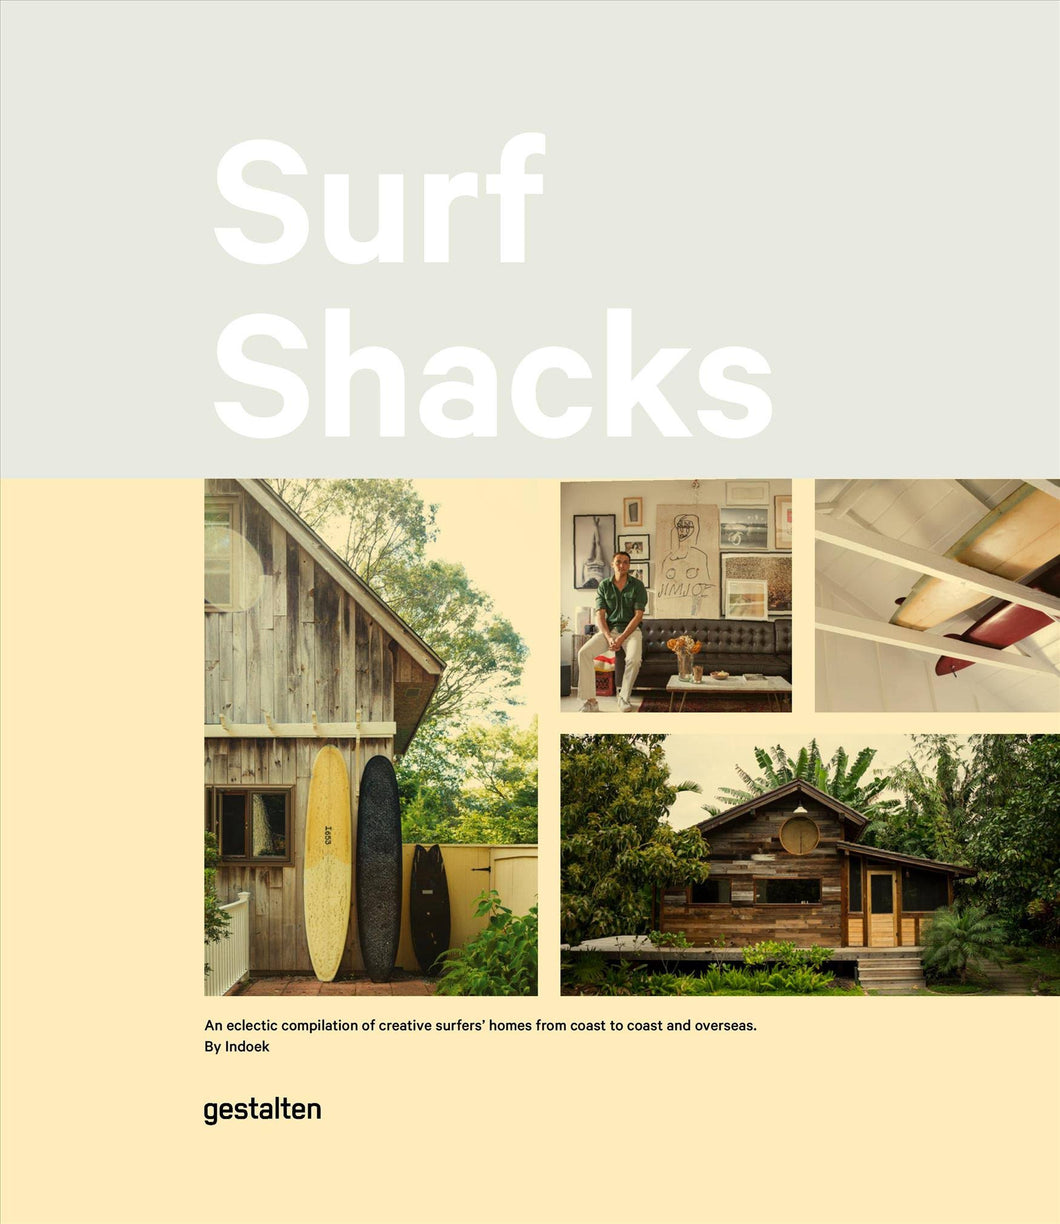 Surf Shacks by Indoek